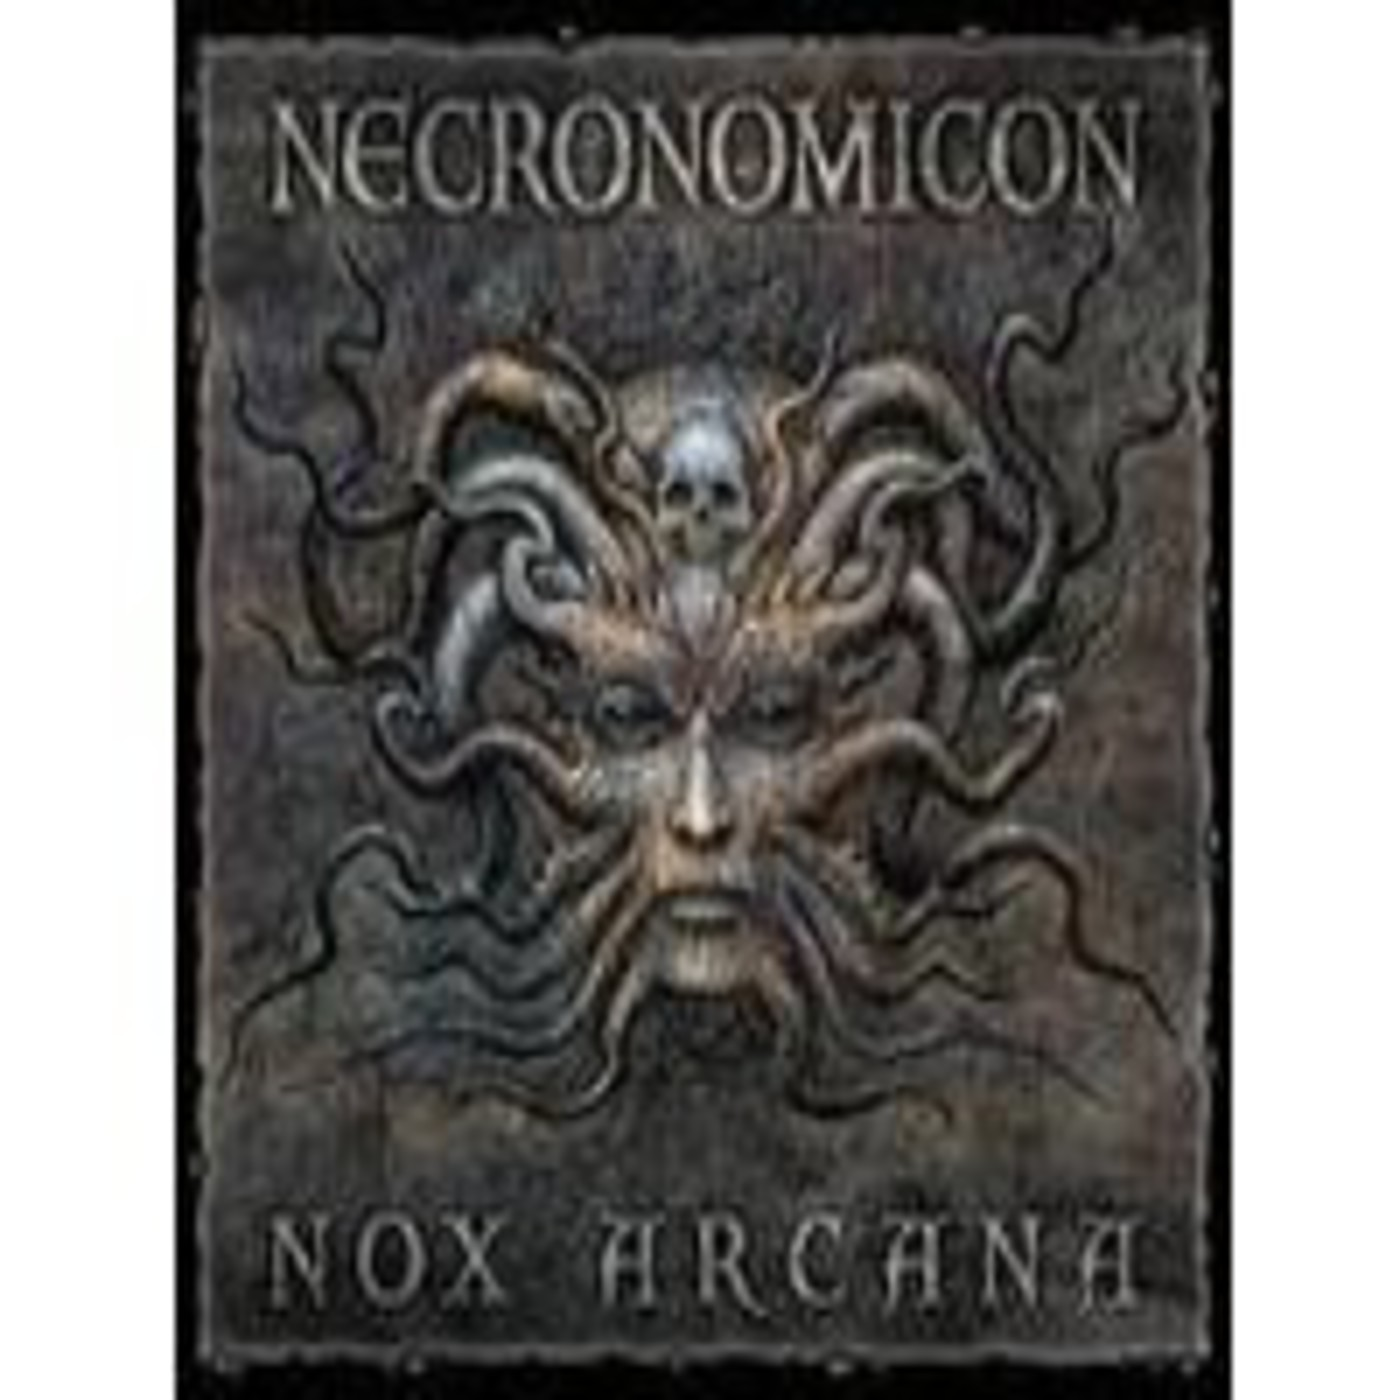 Necronomicon en musica para so ar en mp3 04 02 a las 17 49 for L envers du miroir